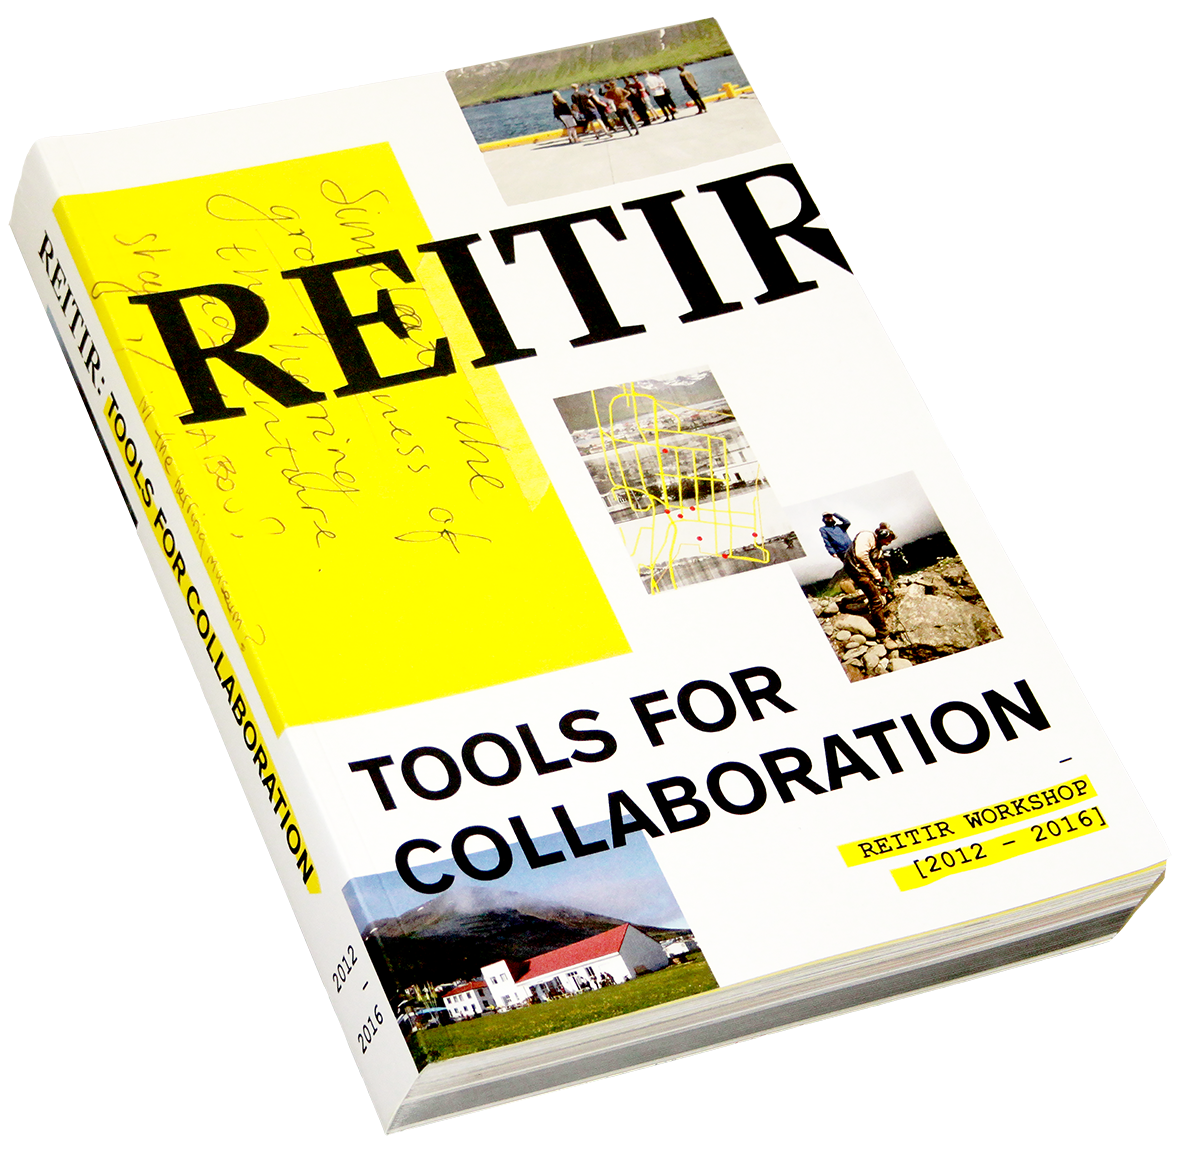 Image of REITIR: Tools for Collaboration